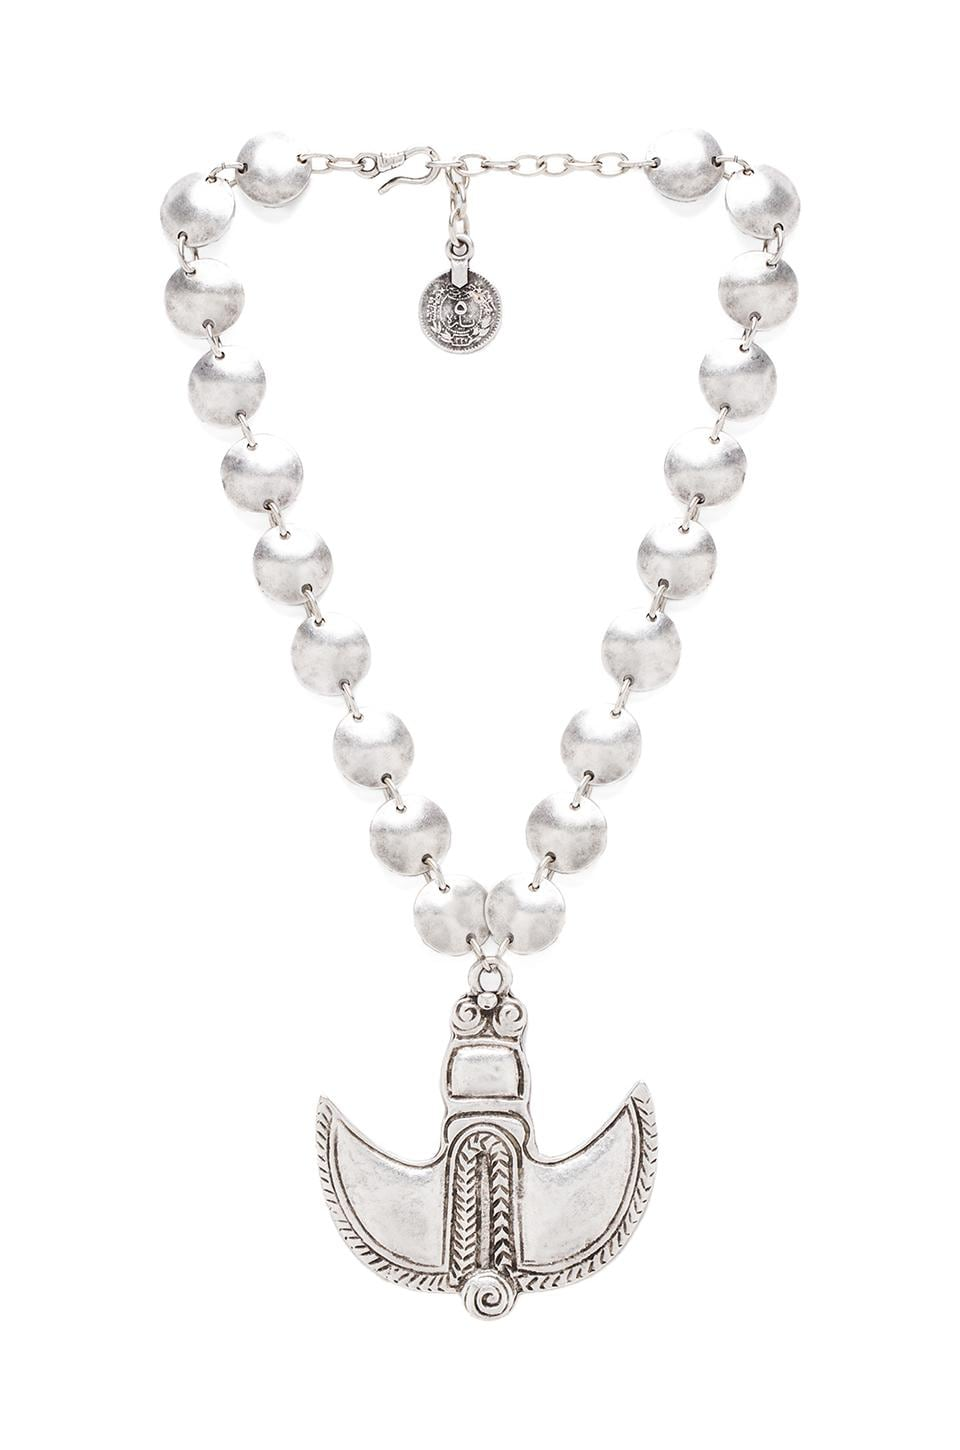 Natalie B Jewelry Sultan's Blade Necklace in Silver